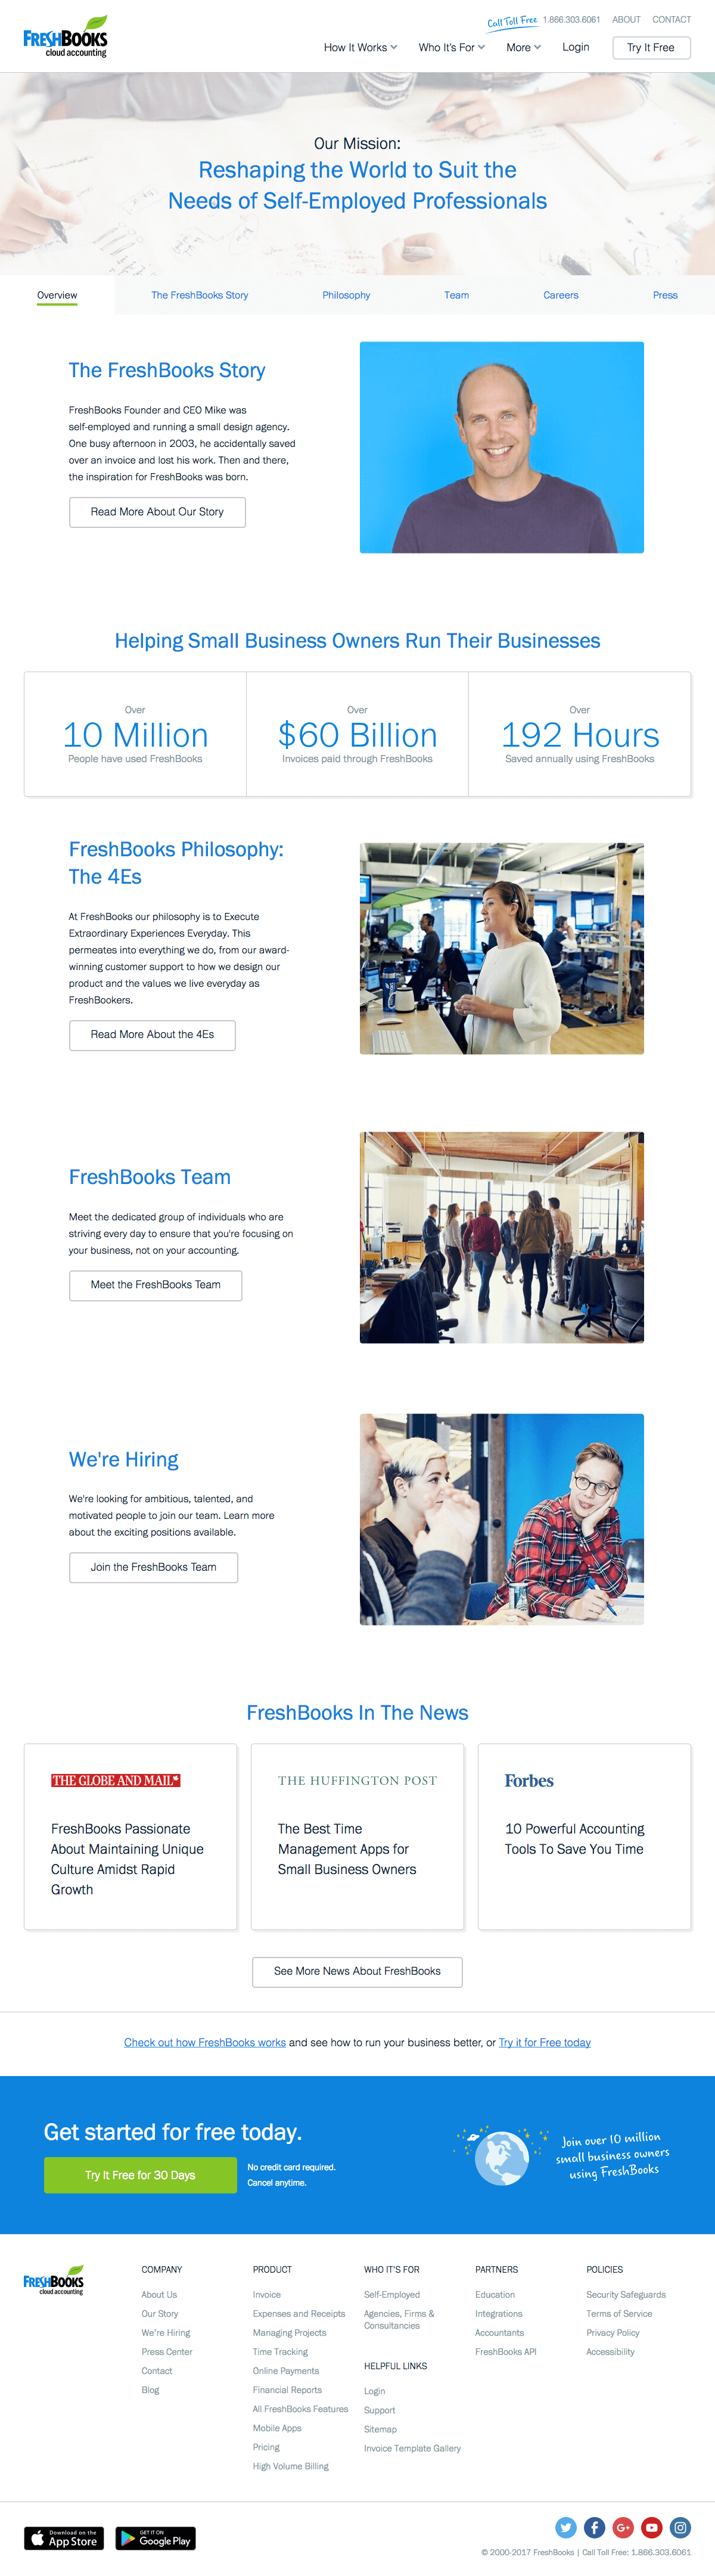 About us page inspiration - saas FreshBooks